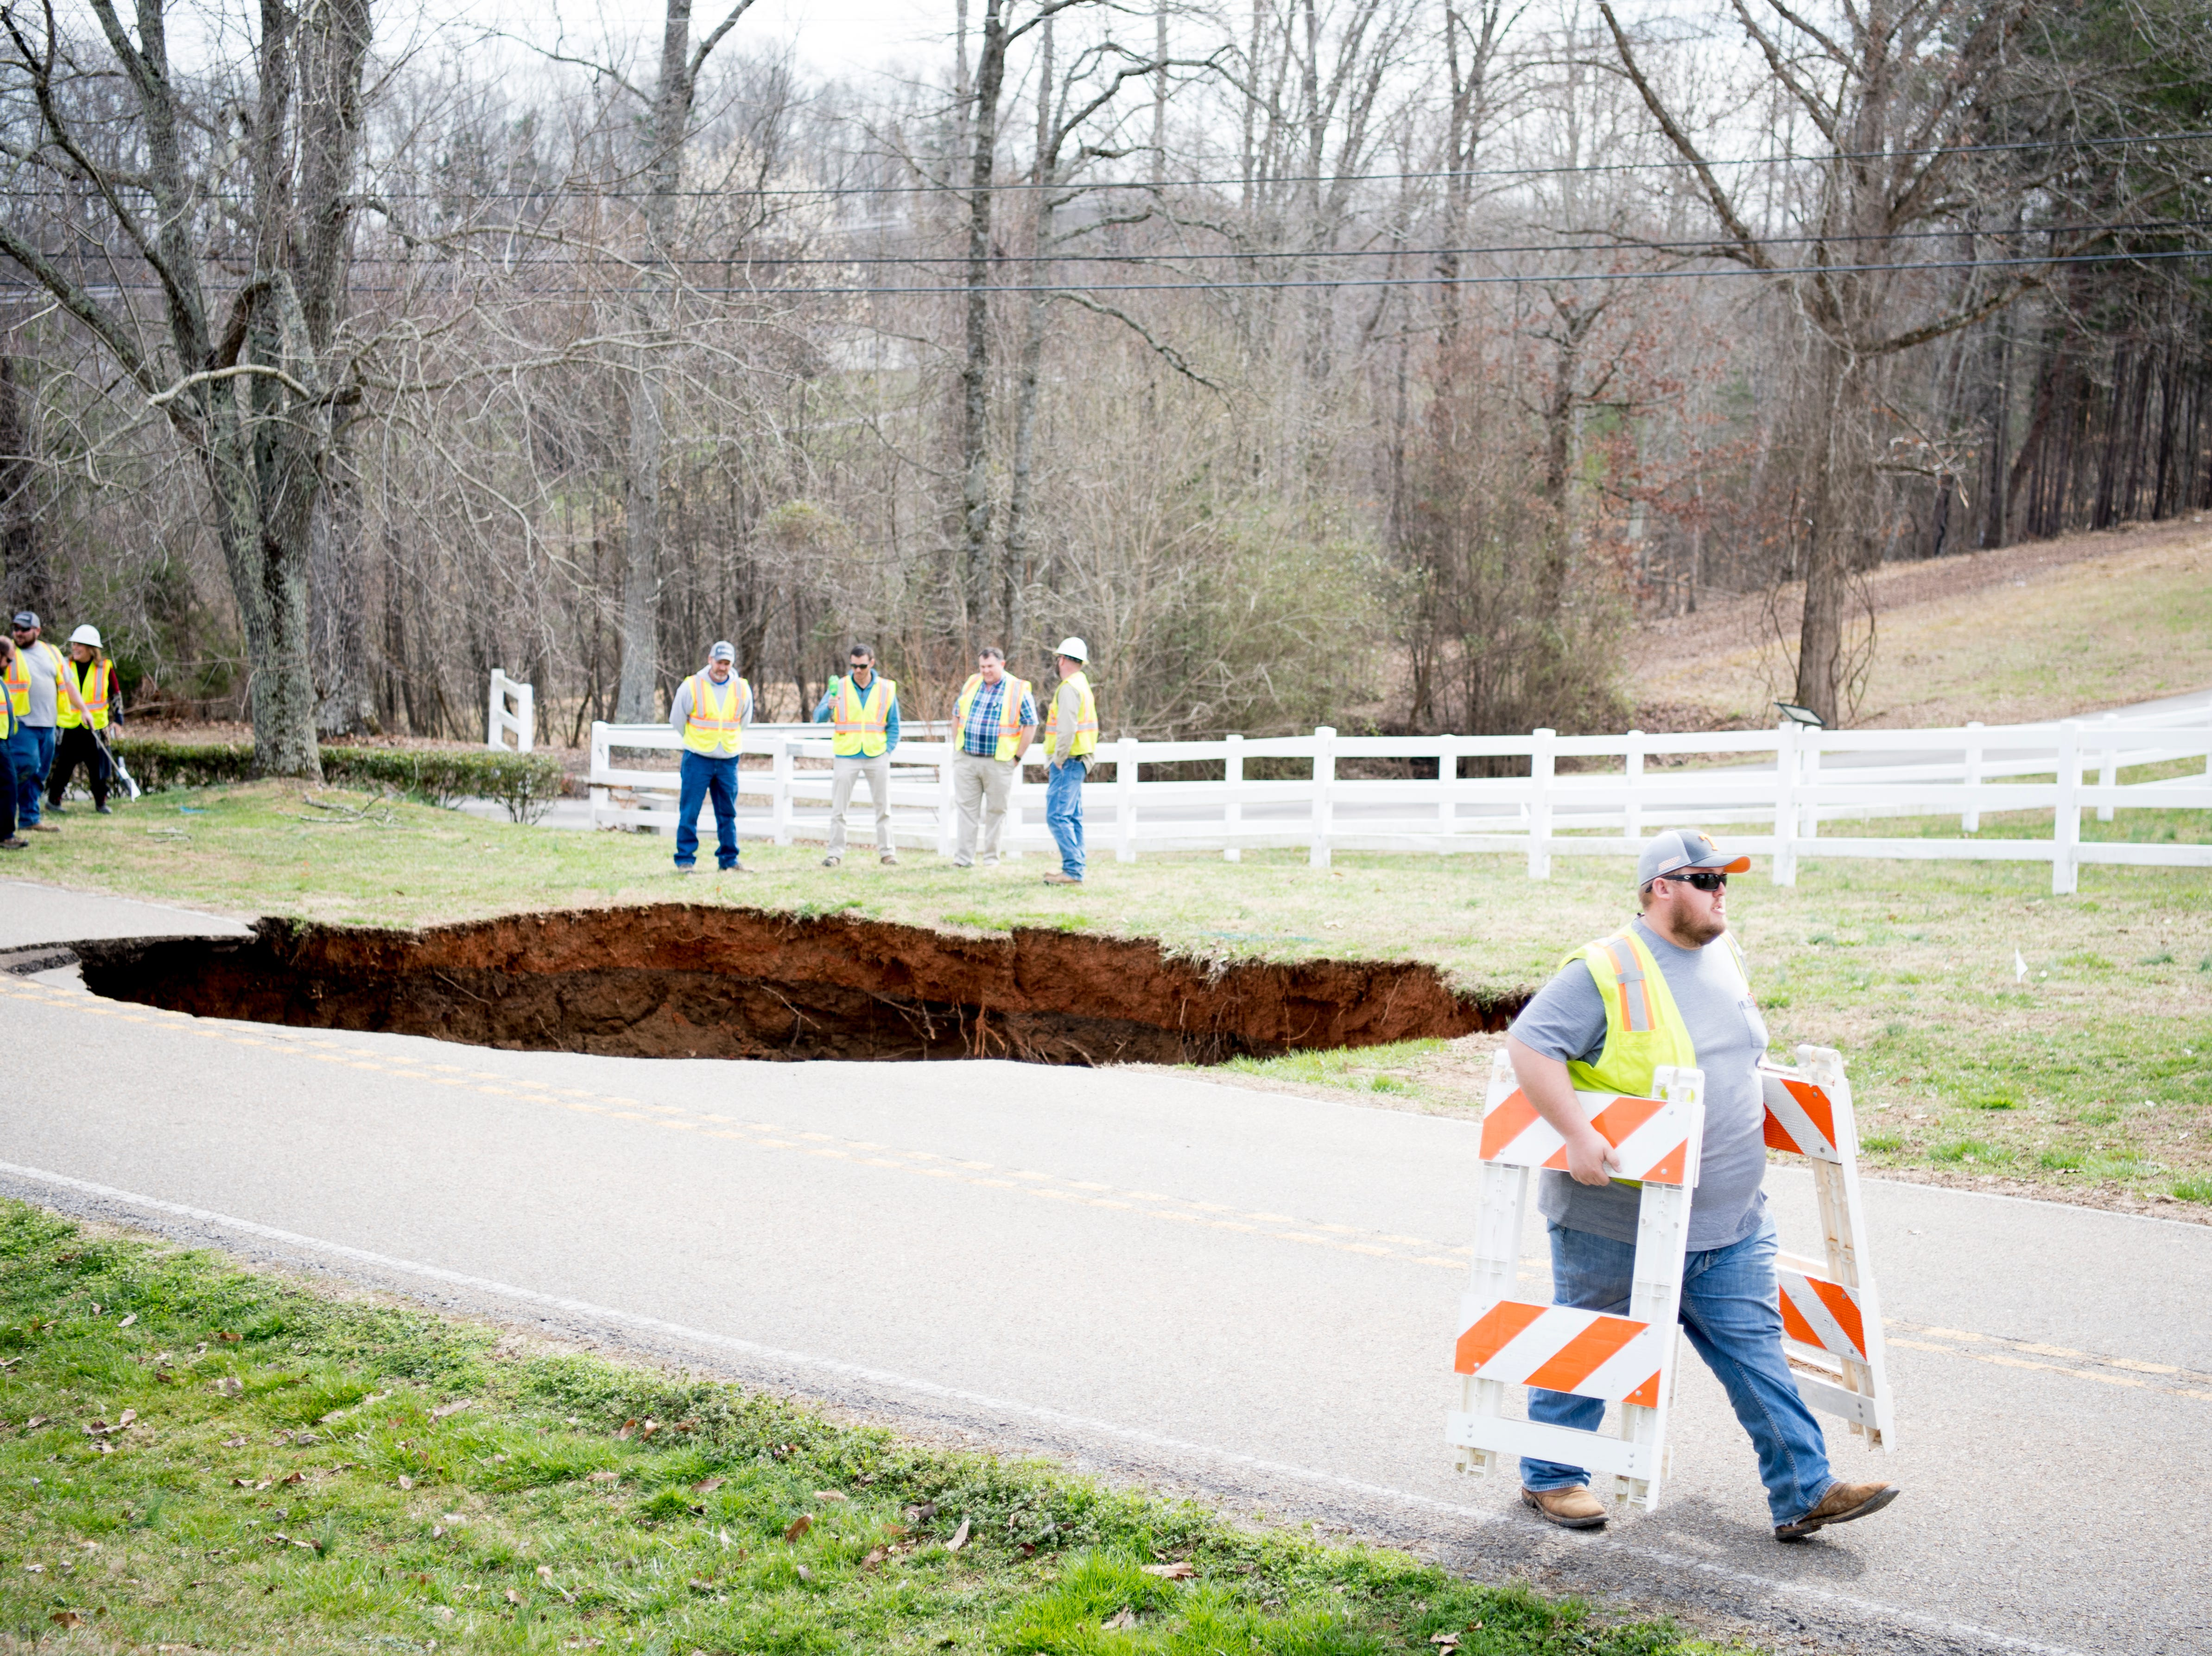 Workers close the road at the scene of a large sinkhole on Greenwell Road in Powell, Tennessee on Tuesday, February 26, 2019. The sinkhole is estimated to be around 20 feet deep.